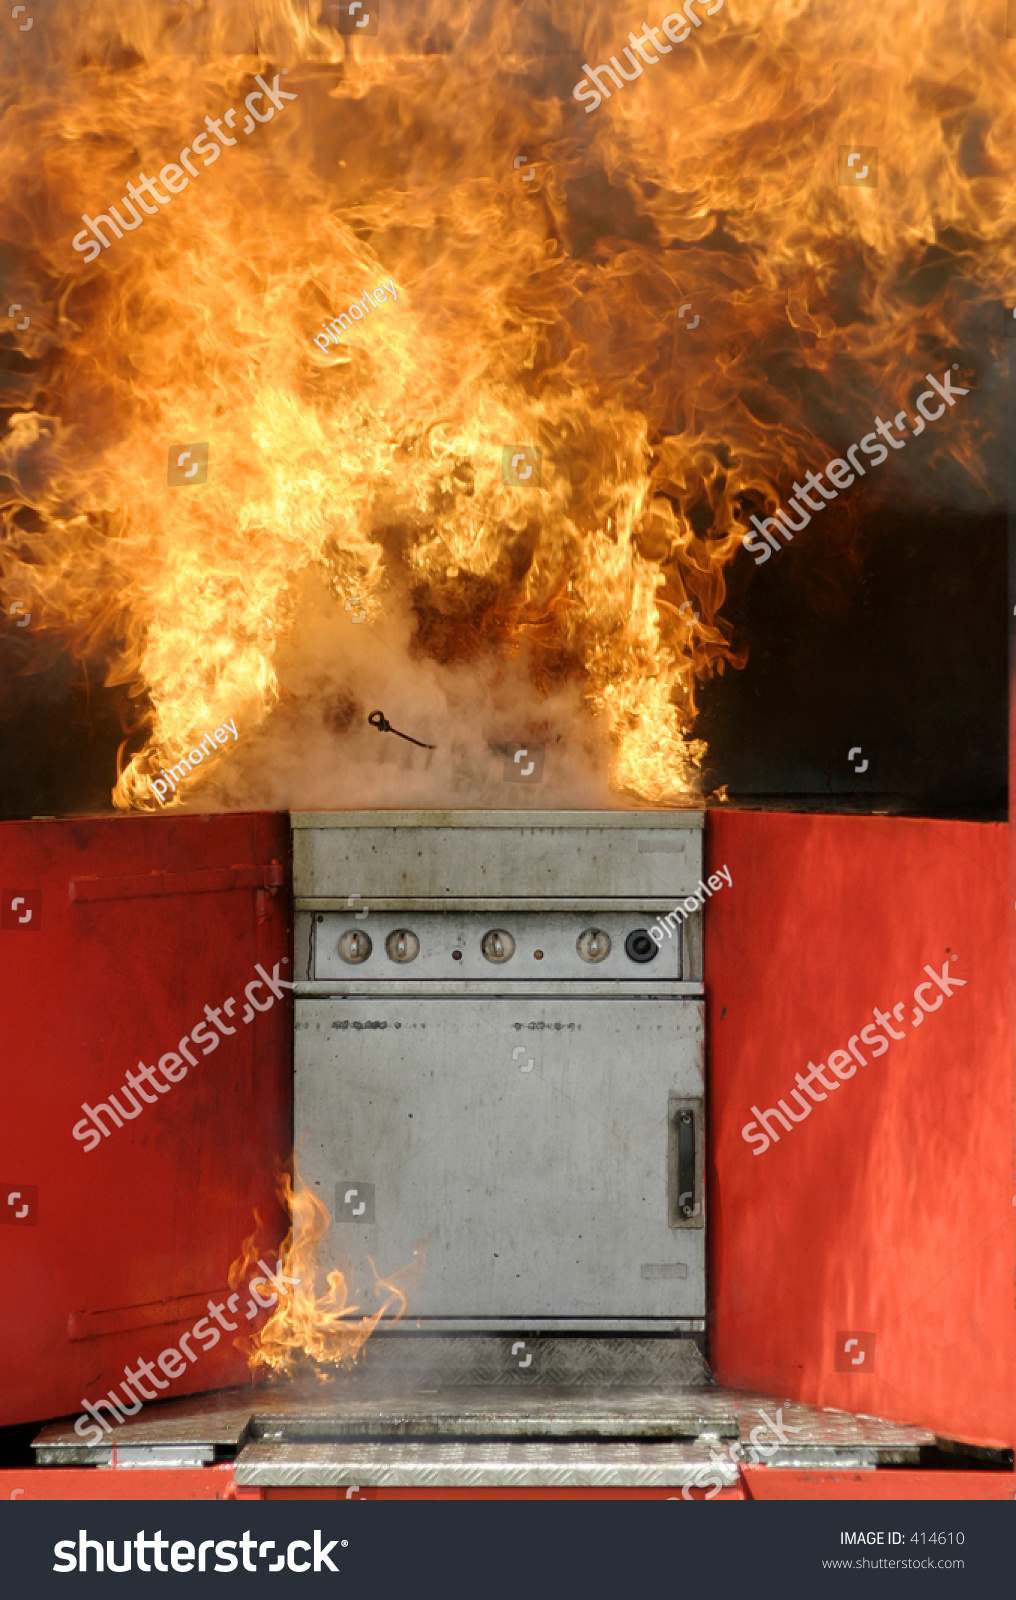 kitchen fire result trying put out stock photo 414610 shutterstock. Black Bedroom Furniture Sets. Home Design Ideas